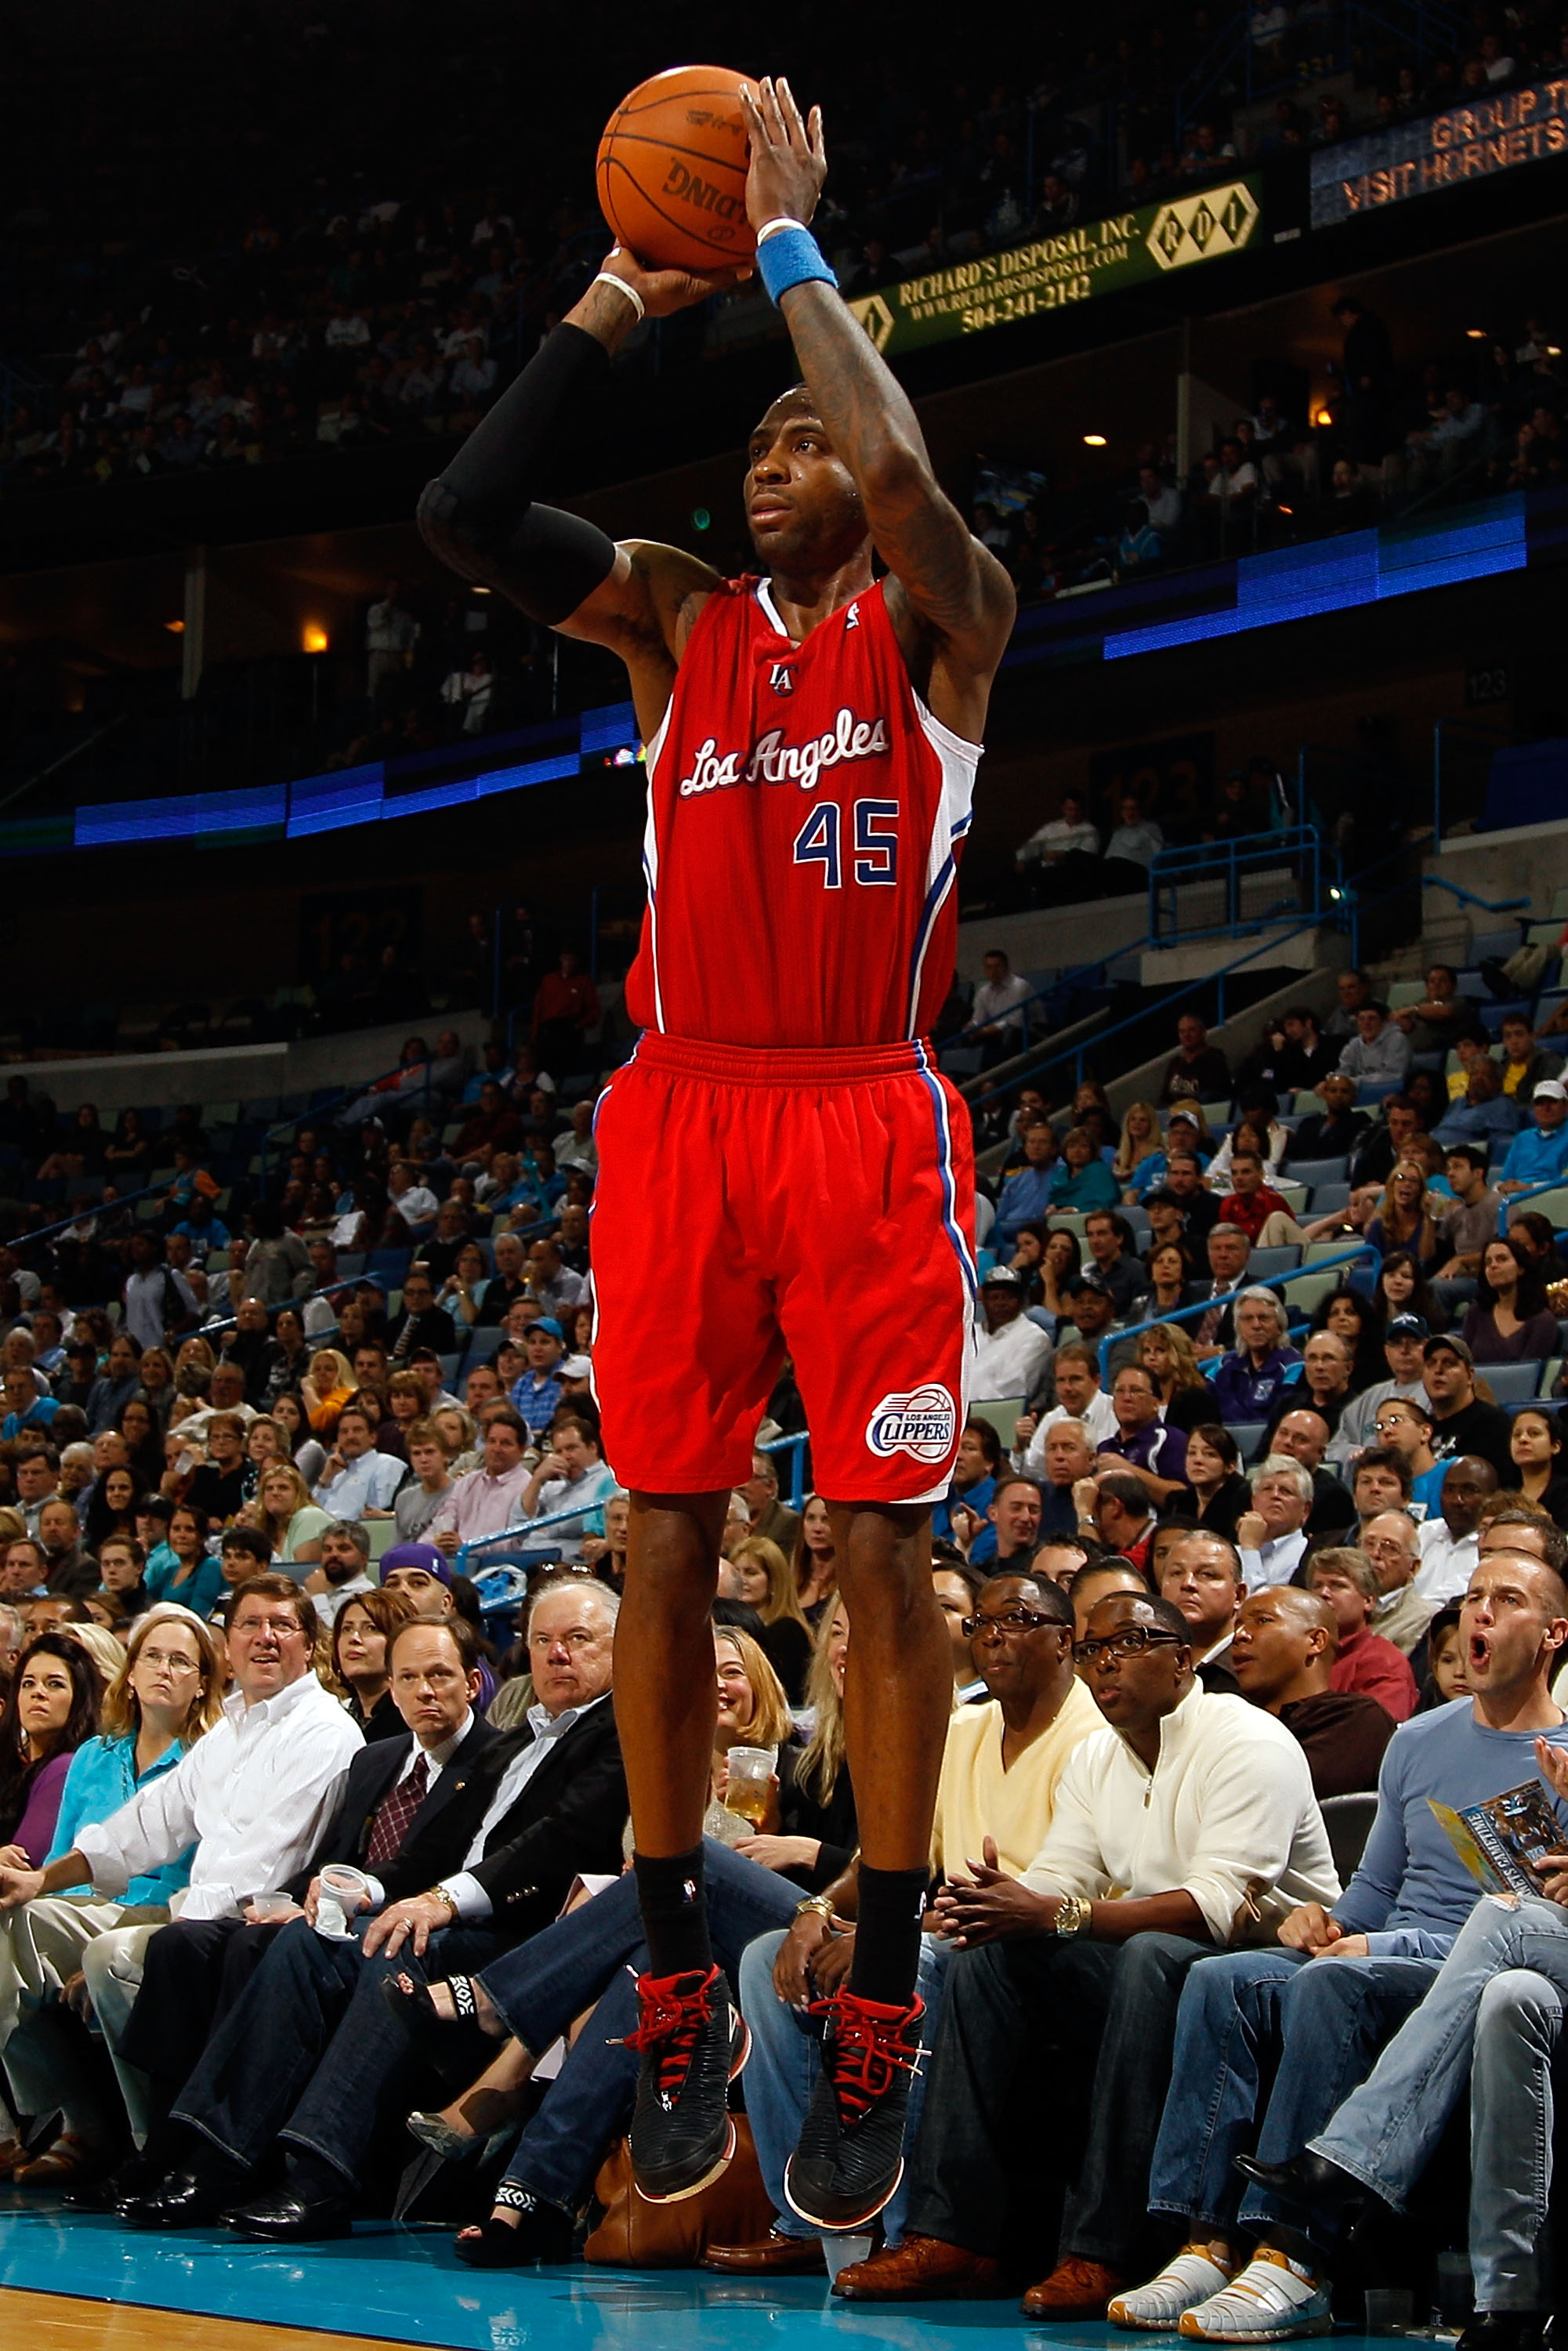 NEW ORLEANS - NOVEMBER 09:  Rasual Butler #45 of the Los Angeles Clippers shoots the ball during the game against the New Orleans Hornets at the New Orleans Arena on November 9, 2010 in New Orleans, Louisiana. The Hornets defeated the Clippers 101-82.   N